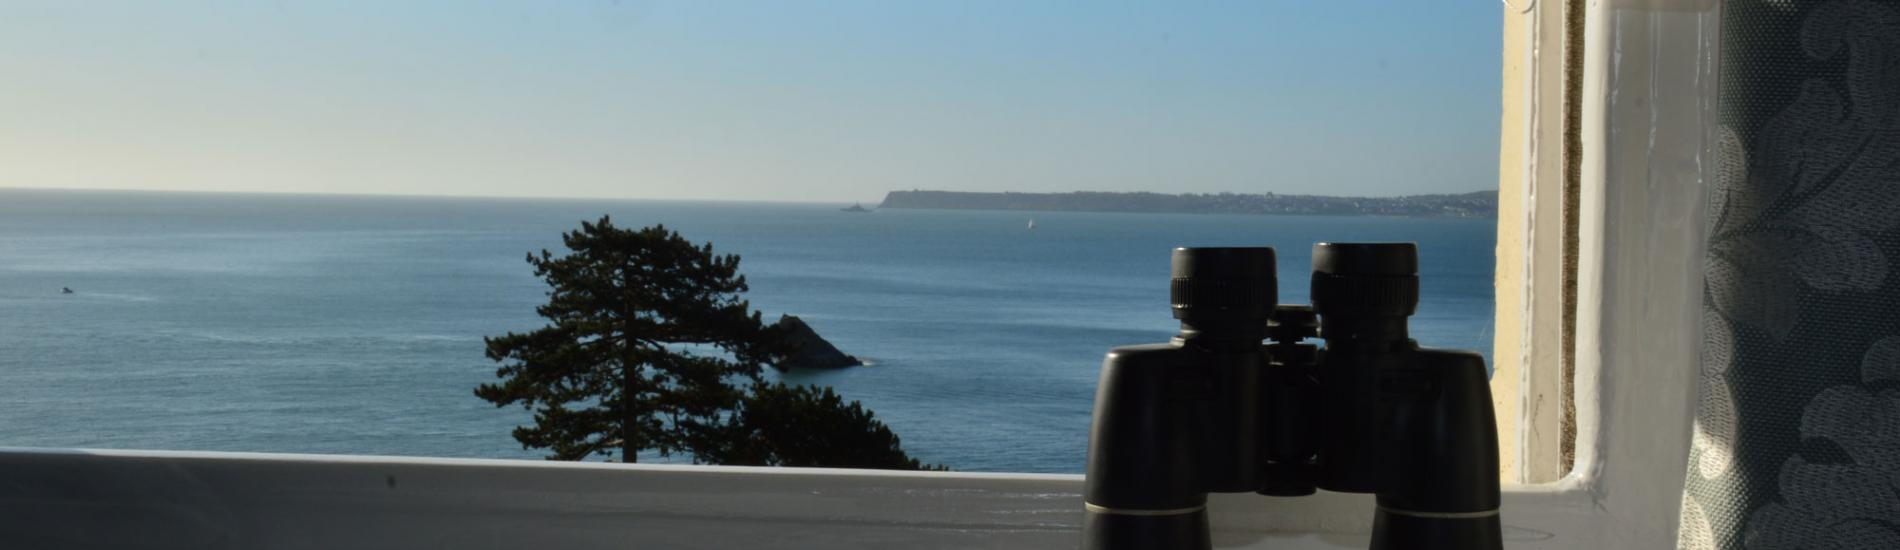 Spectacular sea views from the Osborne Hotel Torquay Devon